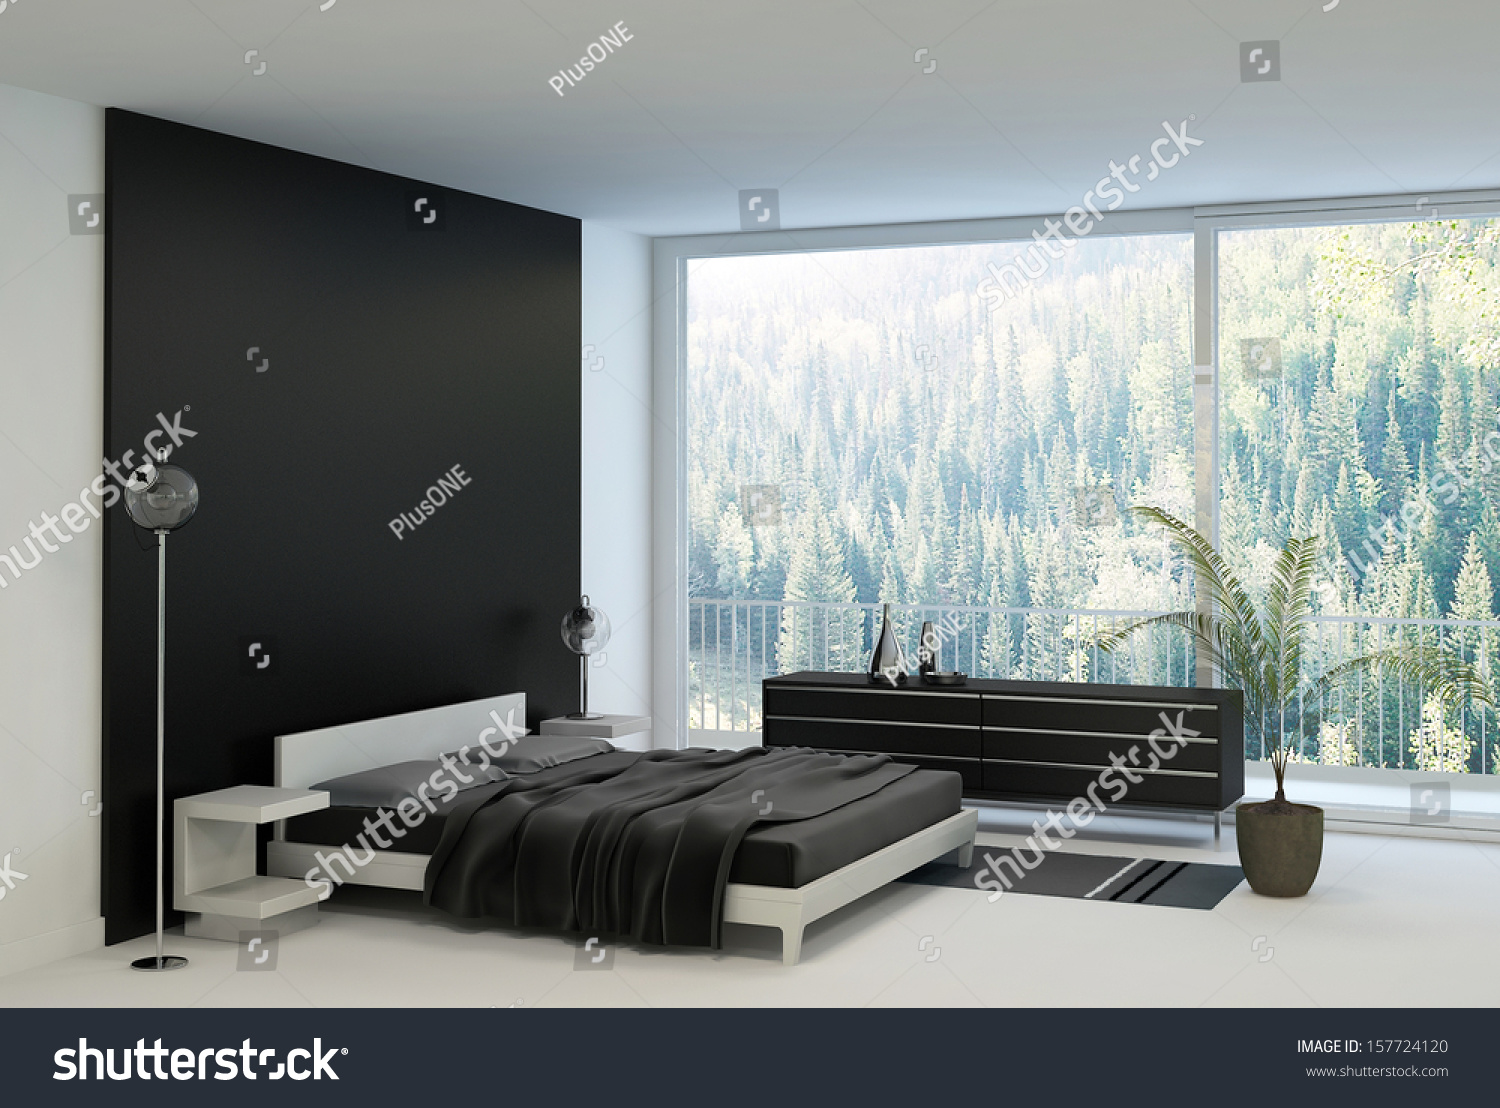 Ultramodern bedroom interior double bed against stock illustration 157724120 shutterstock Master bedroom bed against window